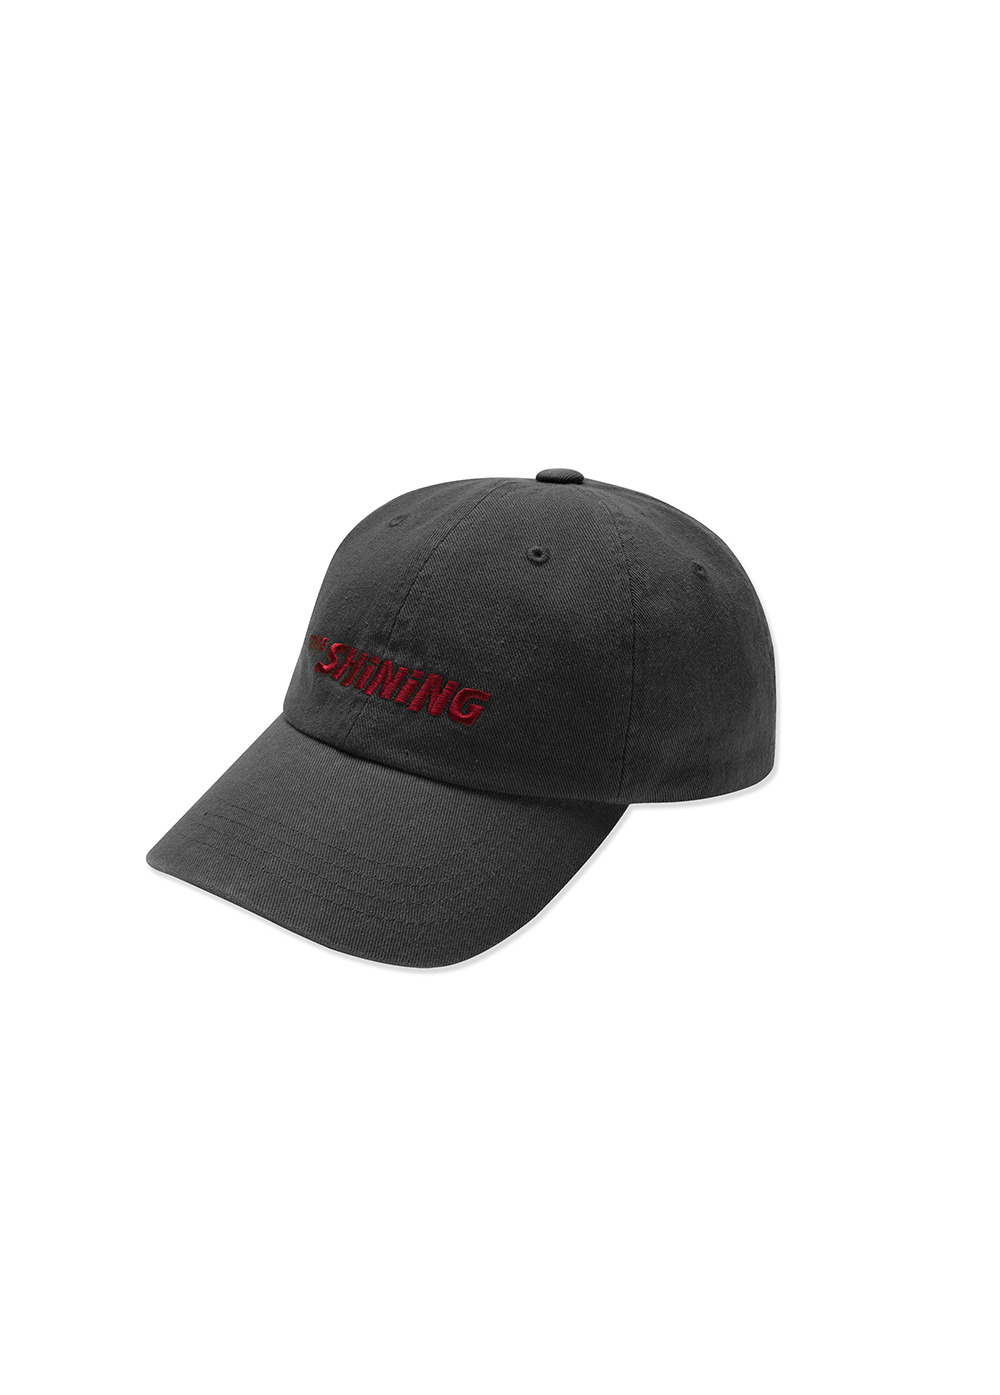 LMC│THE SHINING BASIC WASHED 6 PANEL CAP charcoal